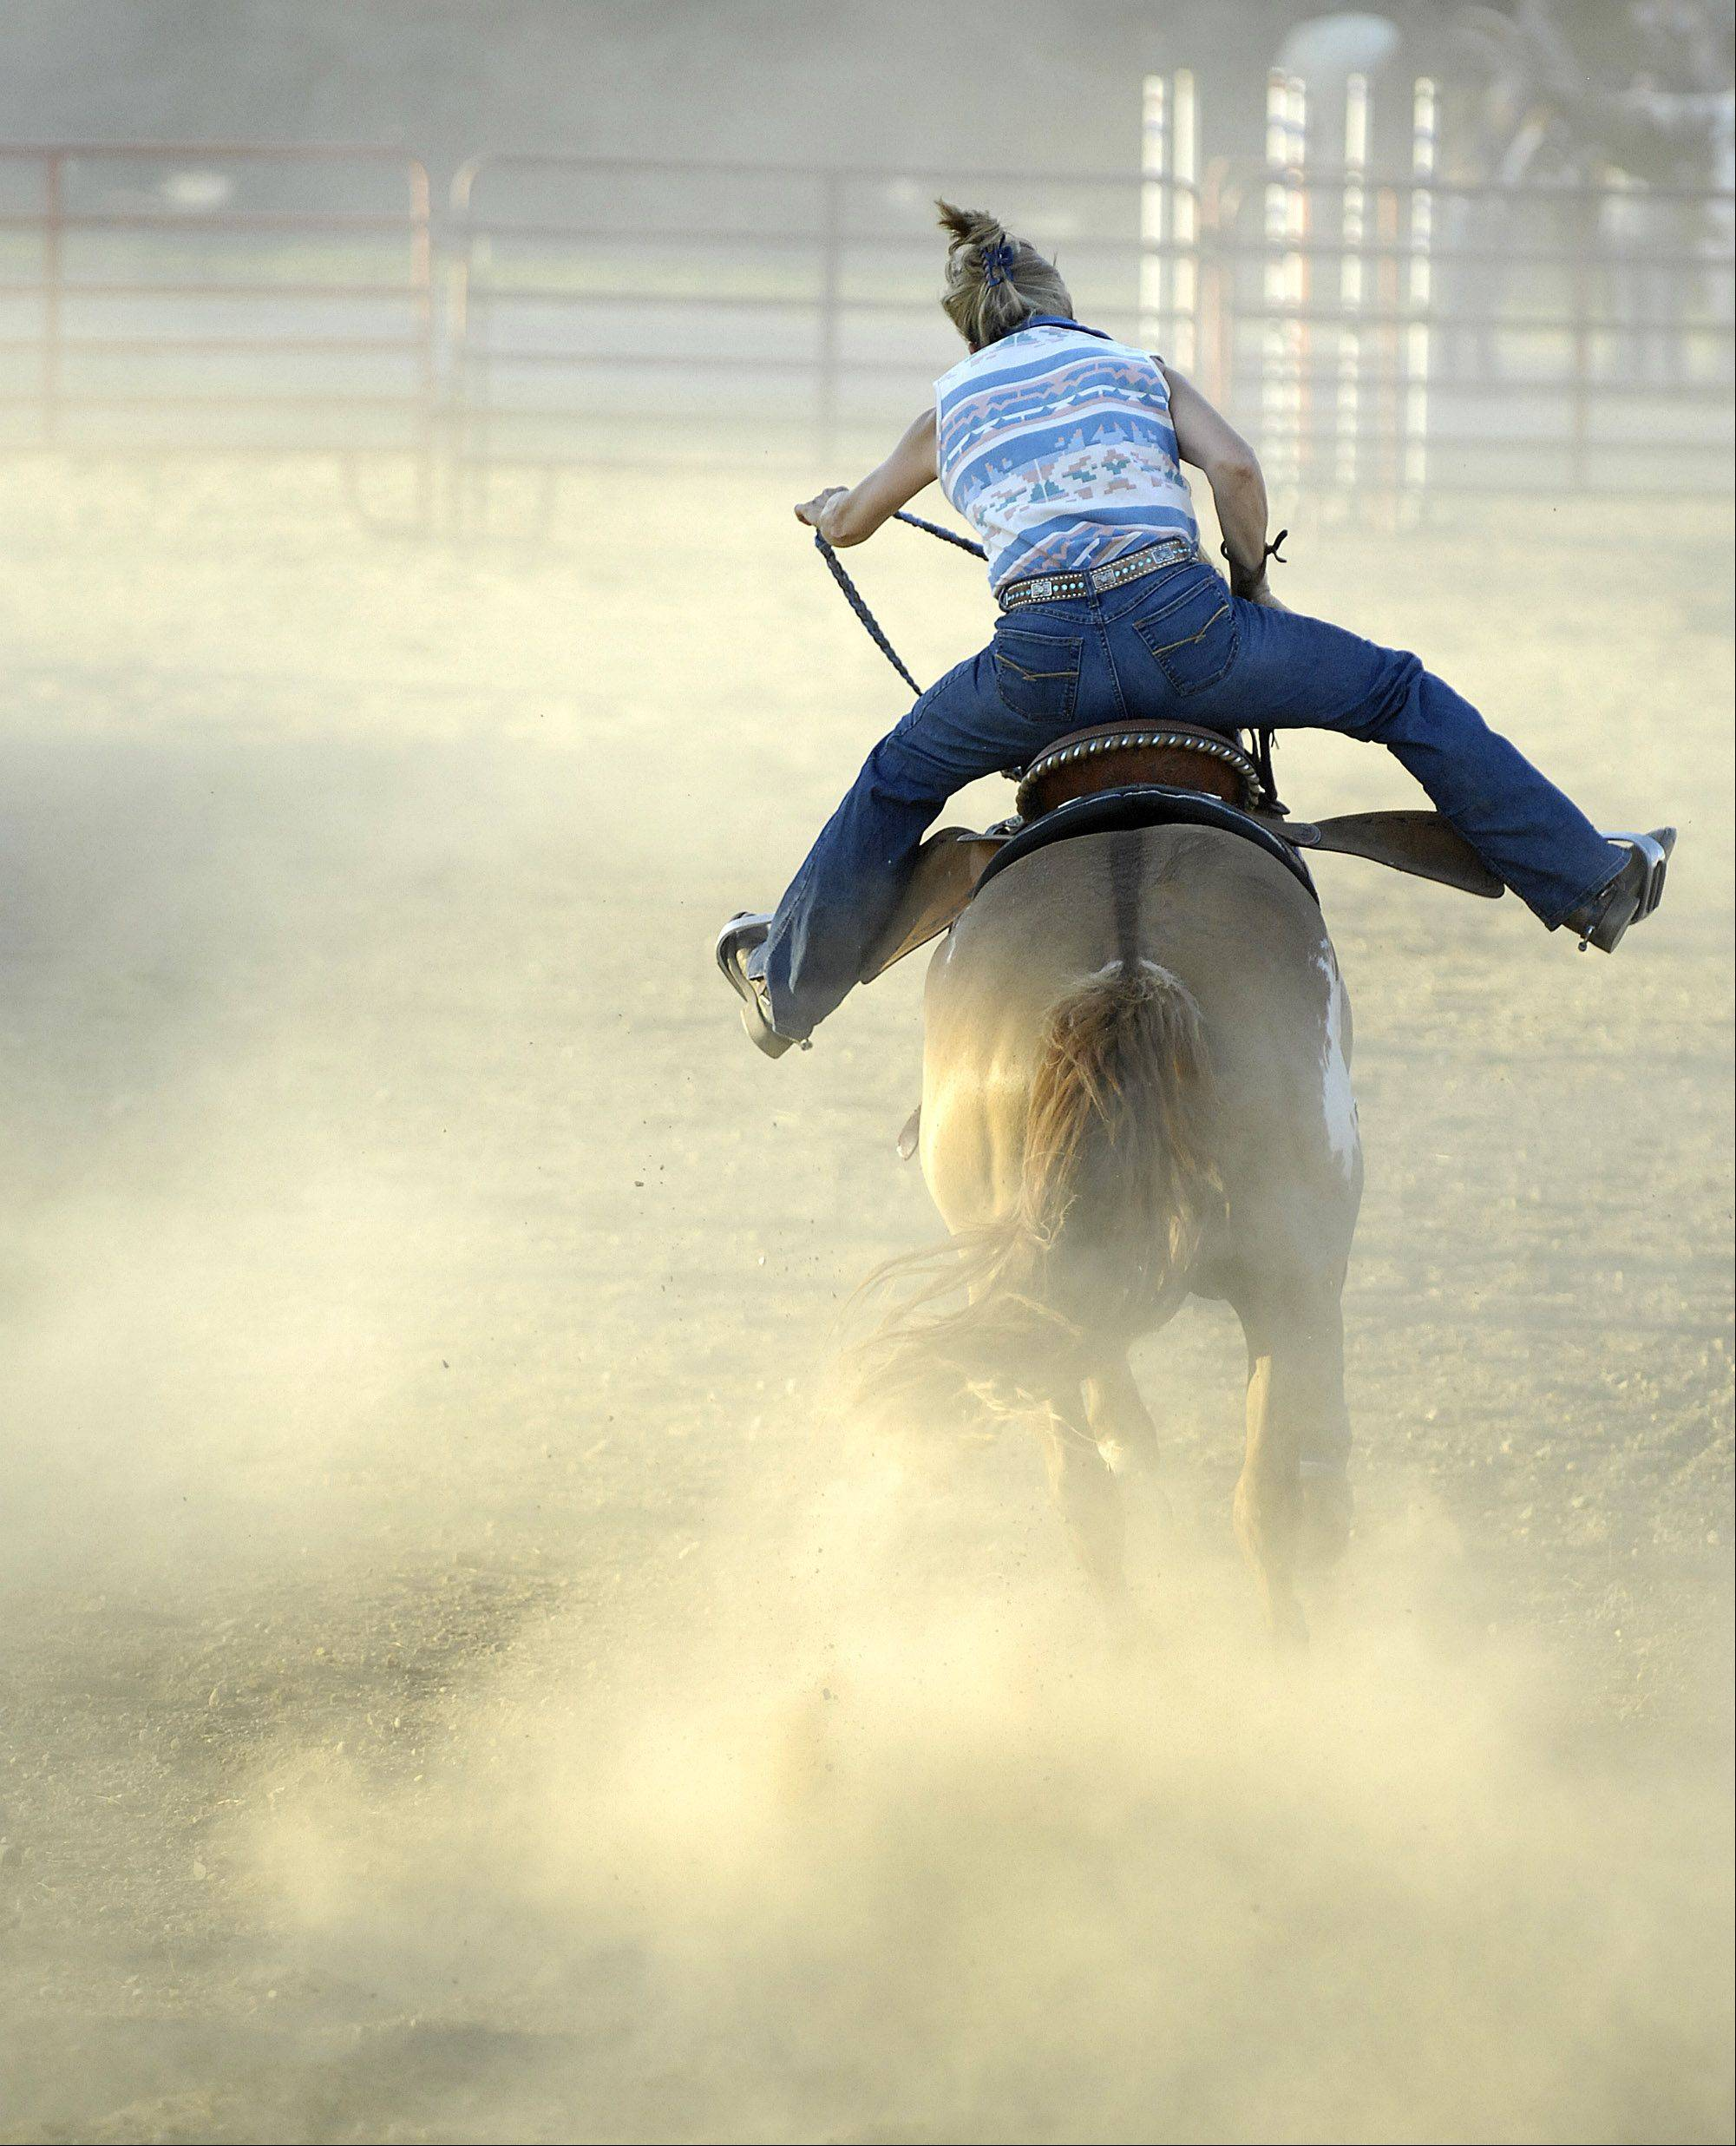 A rider finishes her barrel race run in a cloud of dust during the first day of the Kane County Fair Wednesday in St. Charles.